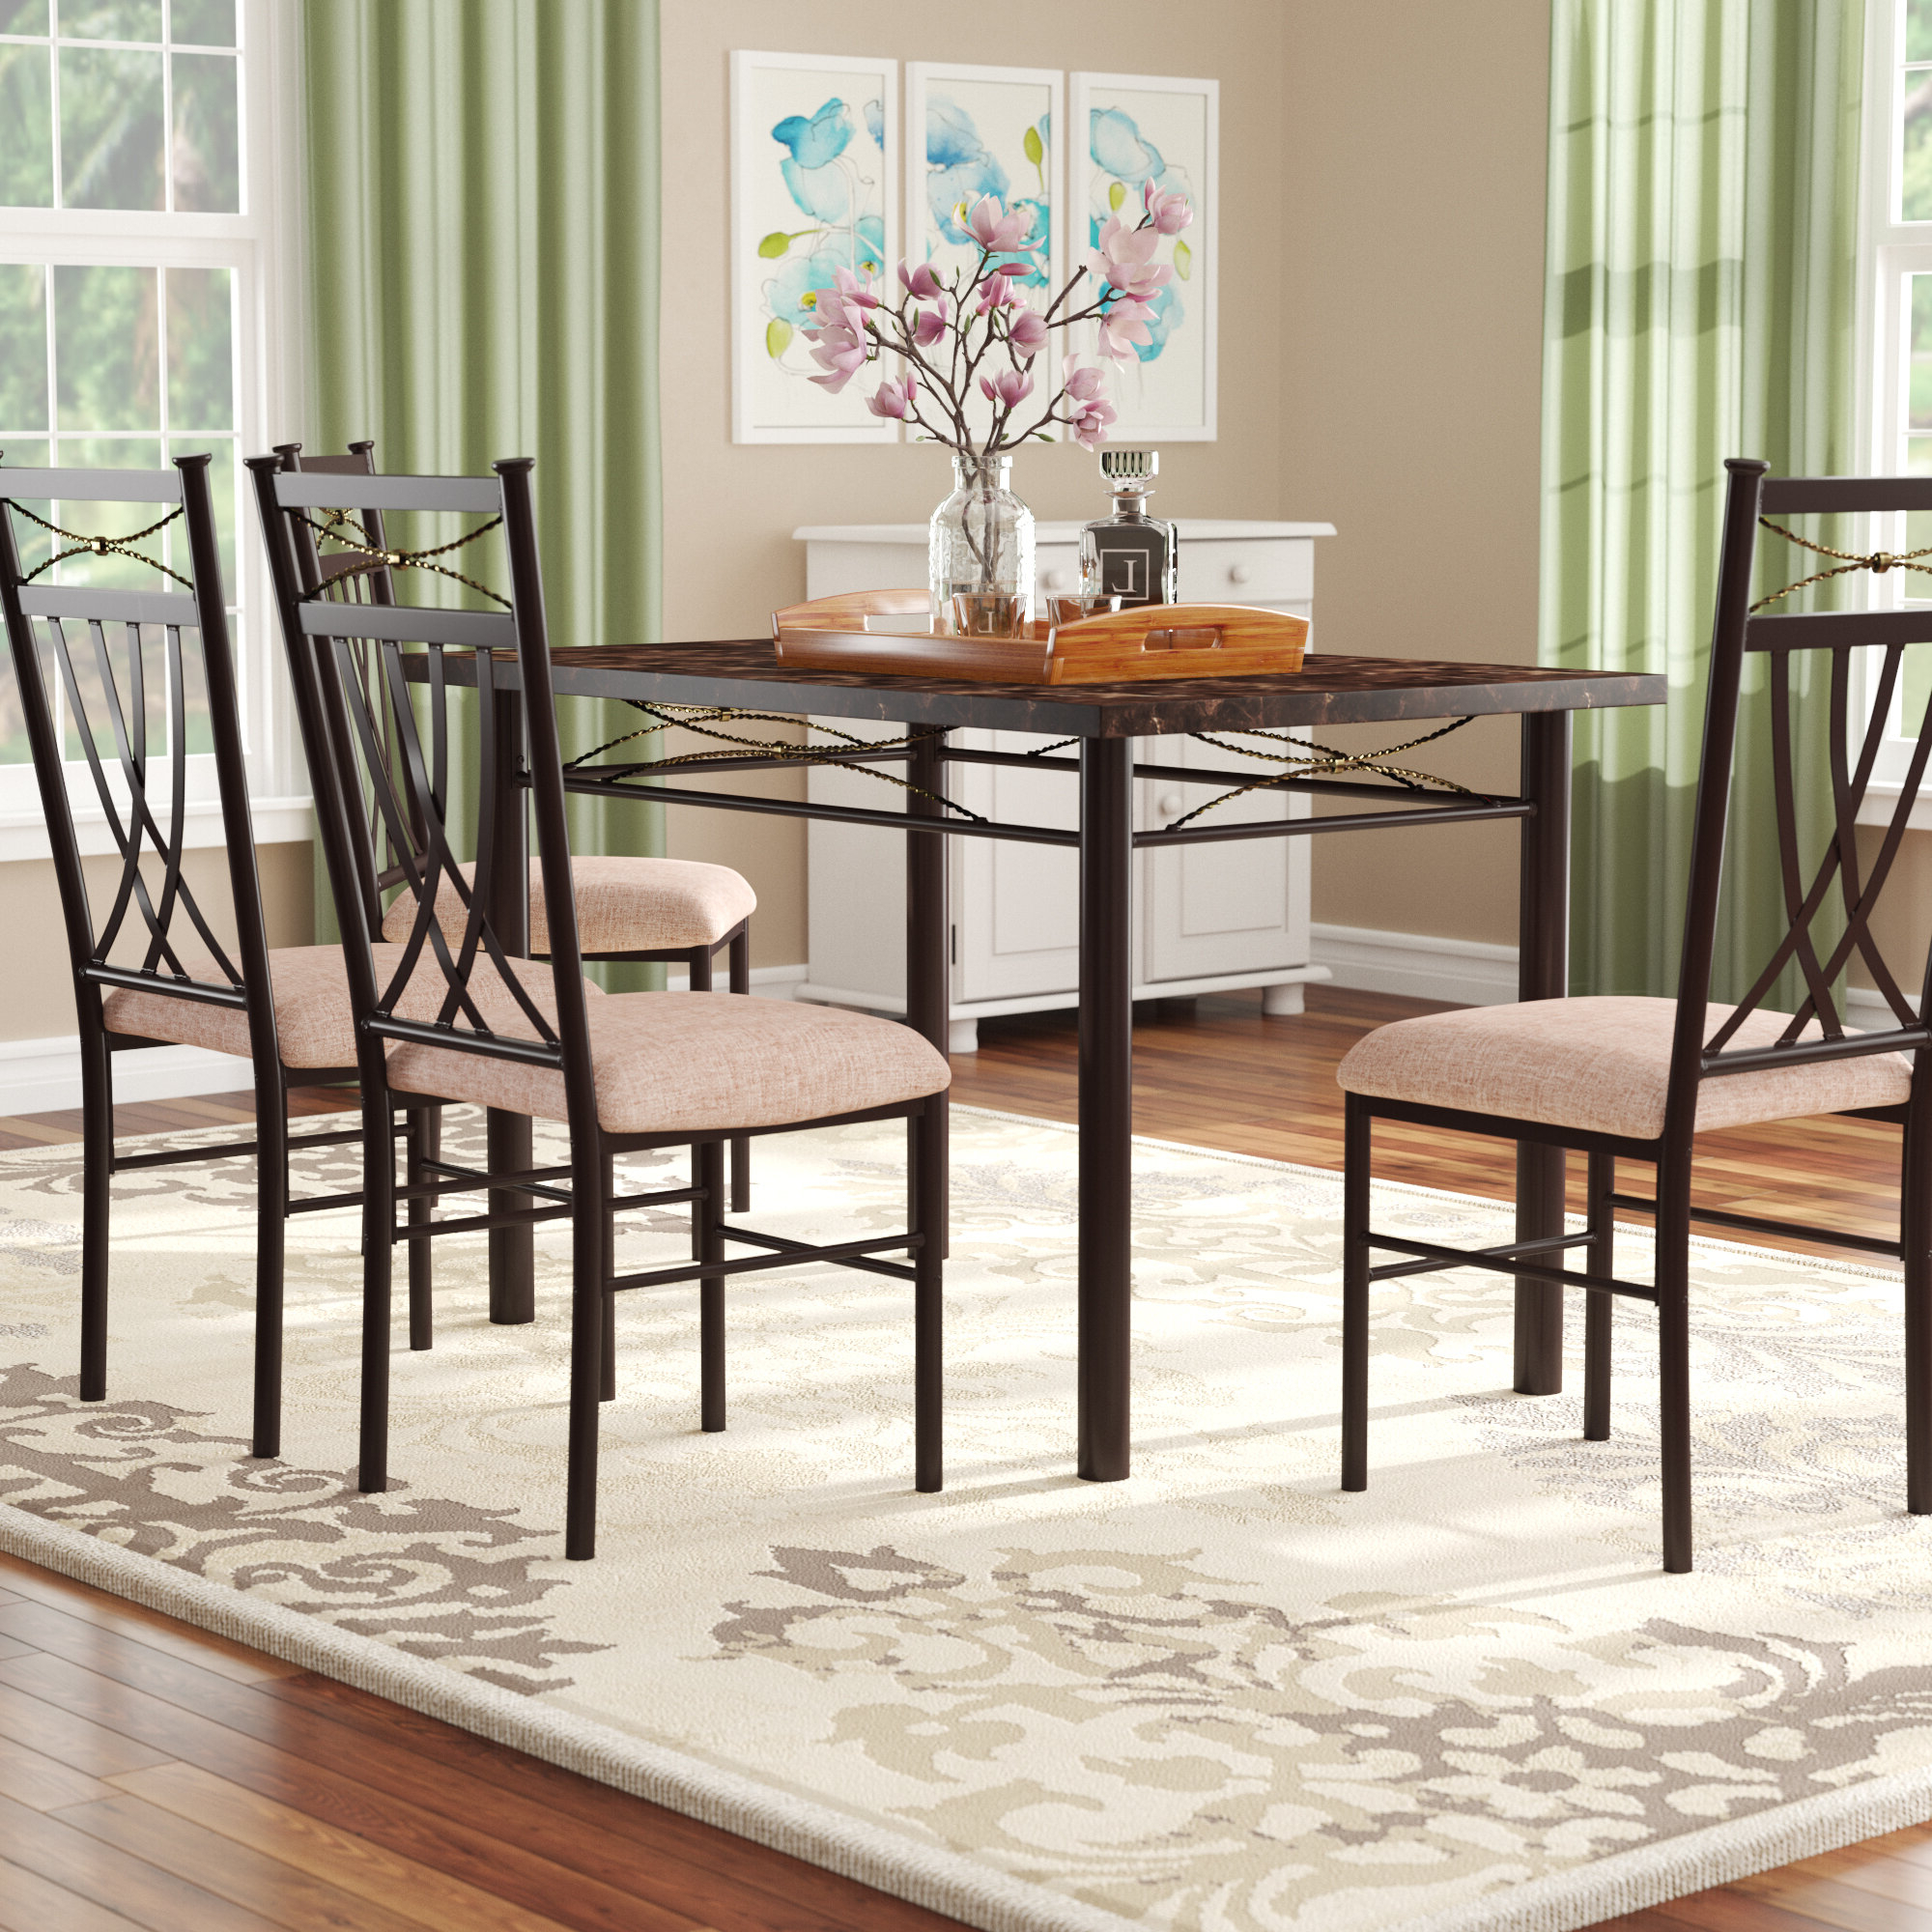 Calla 5 Piece Dining Sets Intended For Newest Branden 5 Piece Dining Set (Gallery 10 of 20)